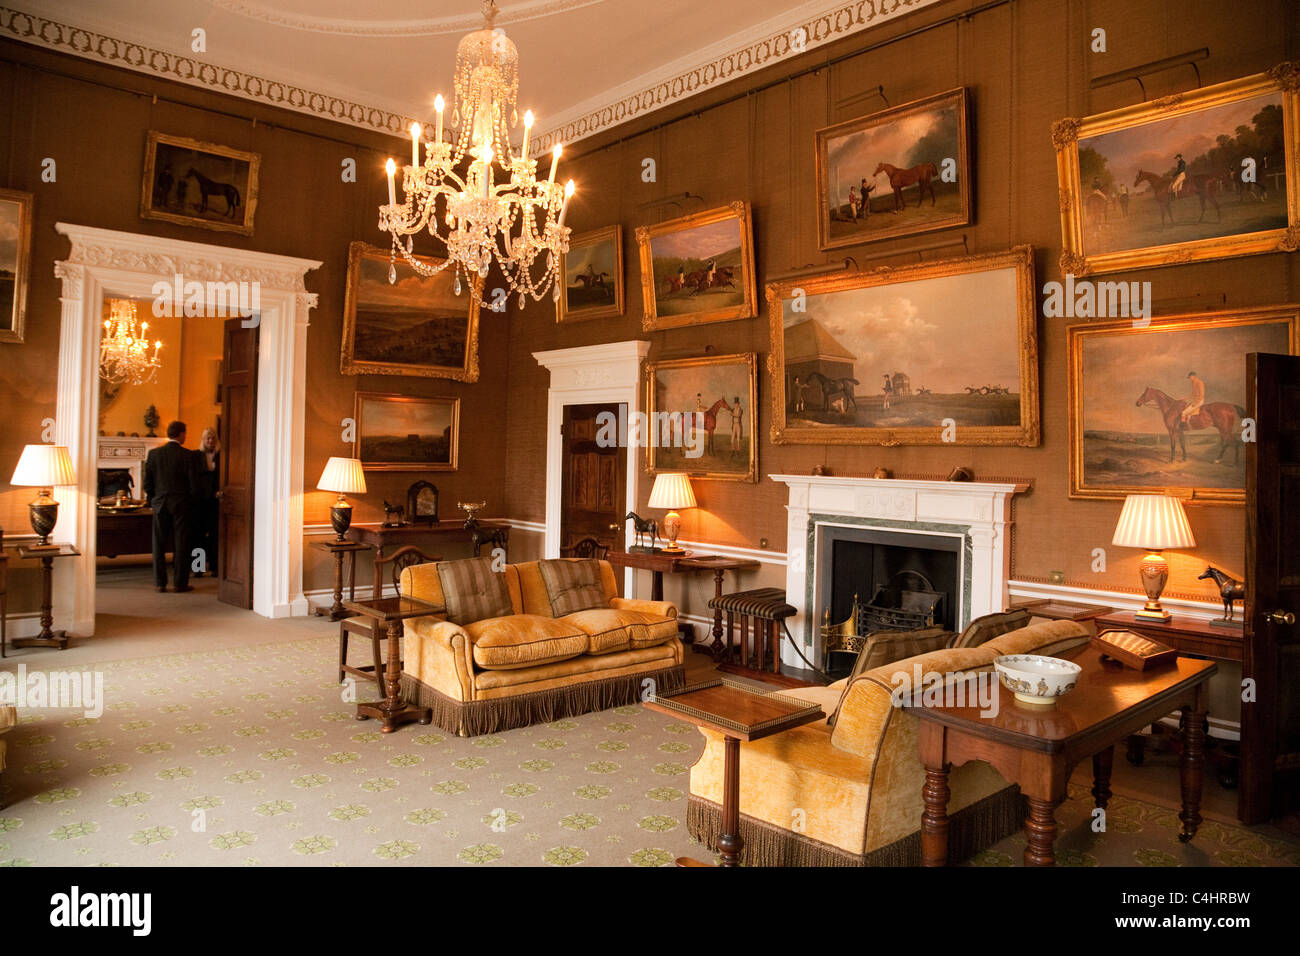 The morning room with famous art collection inside the for Puerta 4 jockey club